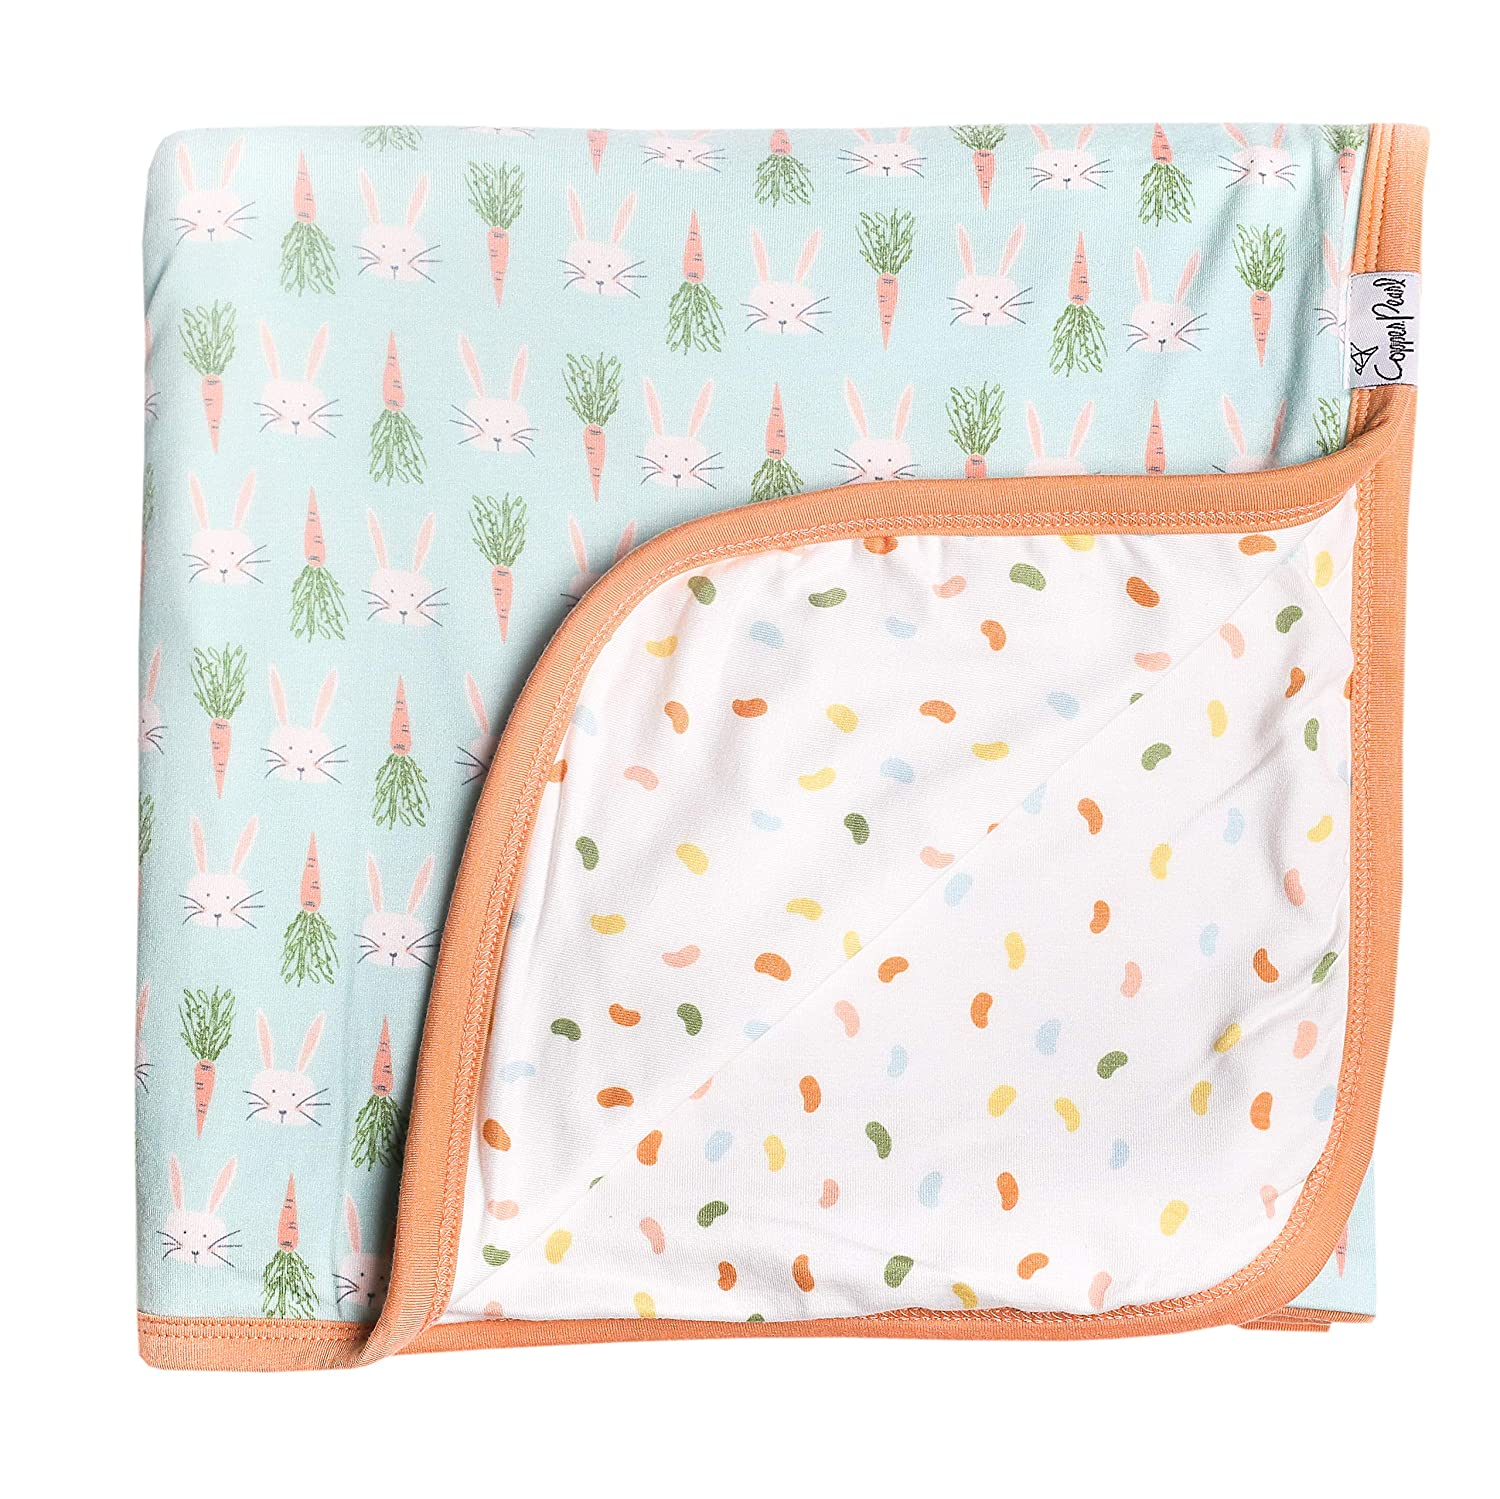 Large Premium Knit Baby 3 Layer Stretchy Quilt BlanketEaster by Copper Pearl